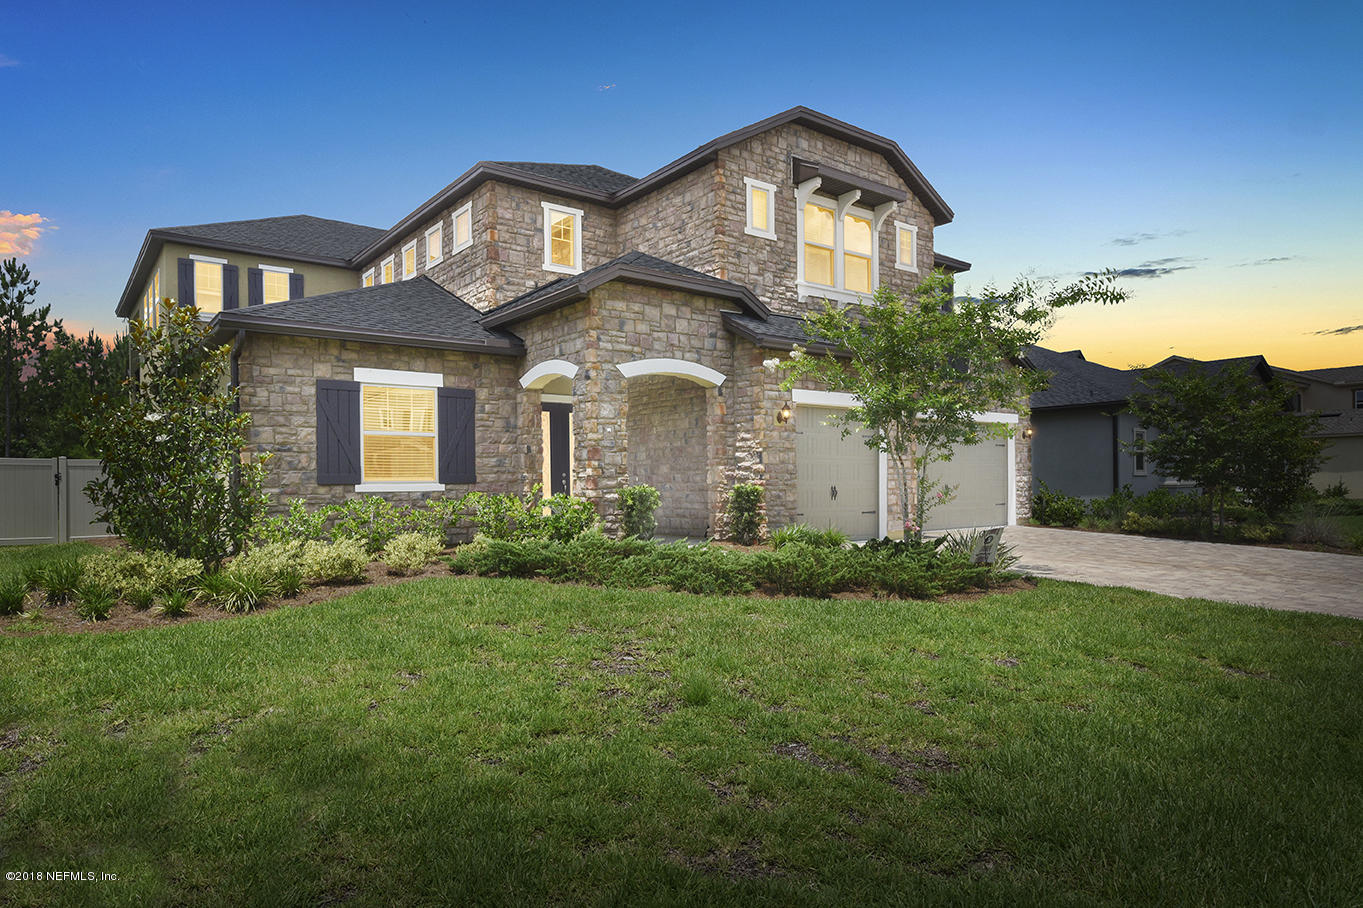 61 AMALURRA, ST JOHNS, FLORIDA 32259, 4 Bedrooms Bedrooms, ,4 BathroomsBathrooms,Residential - single family,For sale,AMALURRA,968537